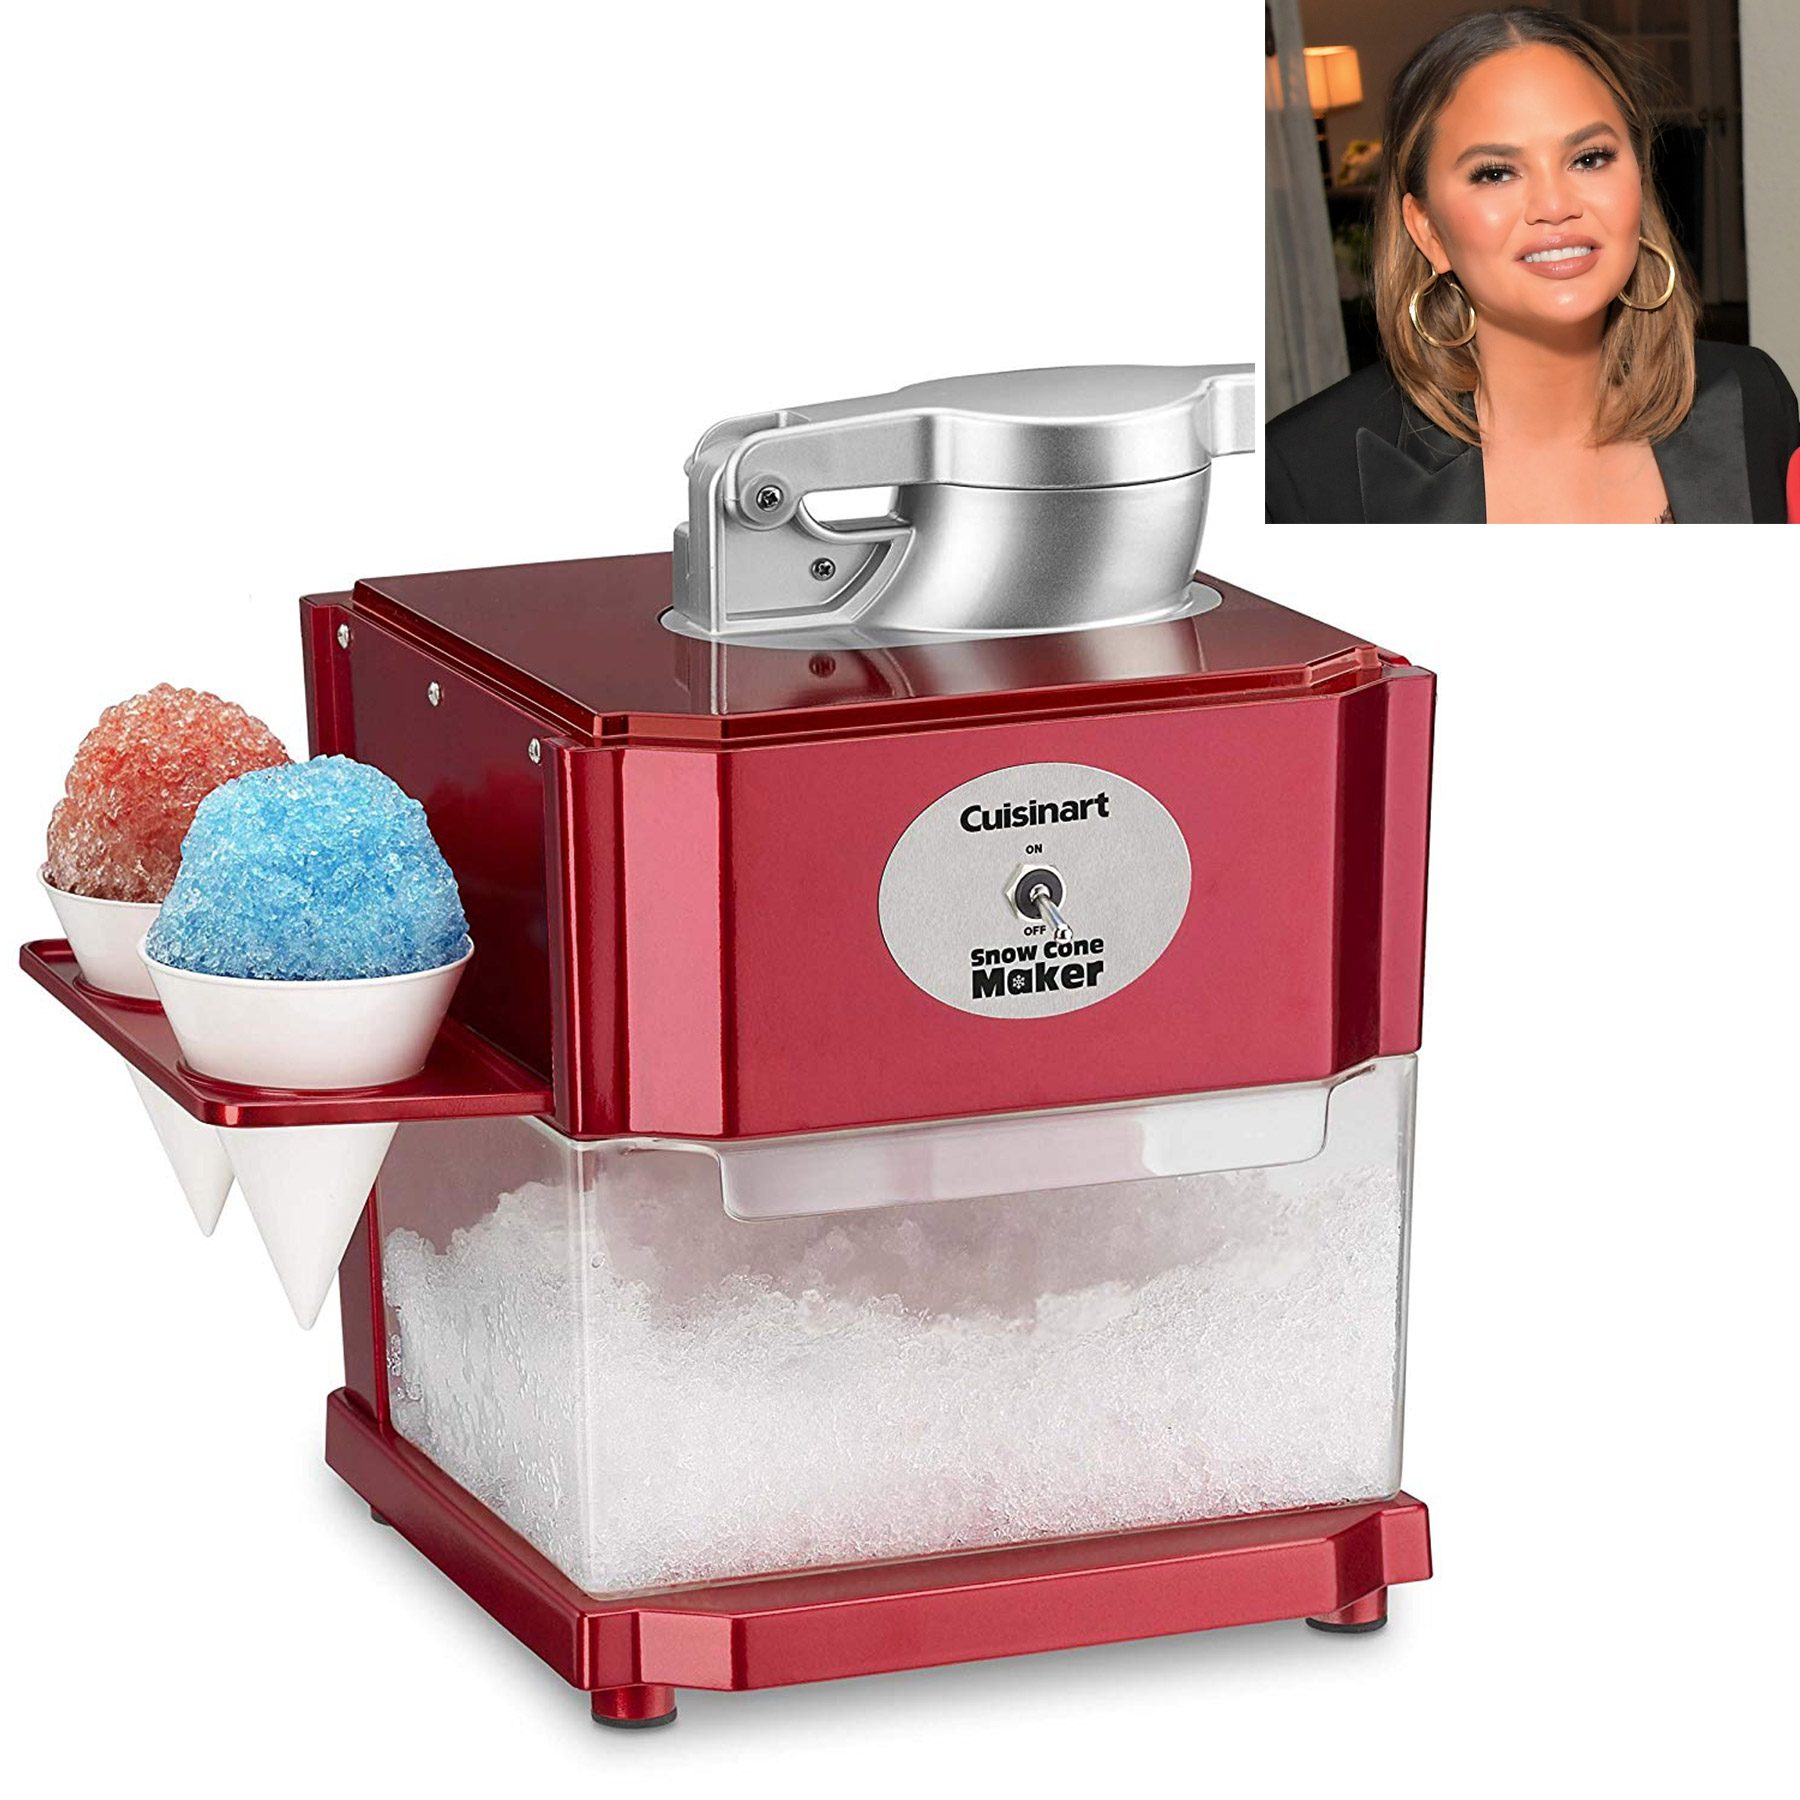 Chrissy Teigen Swears This Snow Cone Maker Is a 'Summer Must-Have'—and You Can Buy It on Amazon